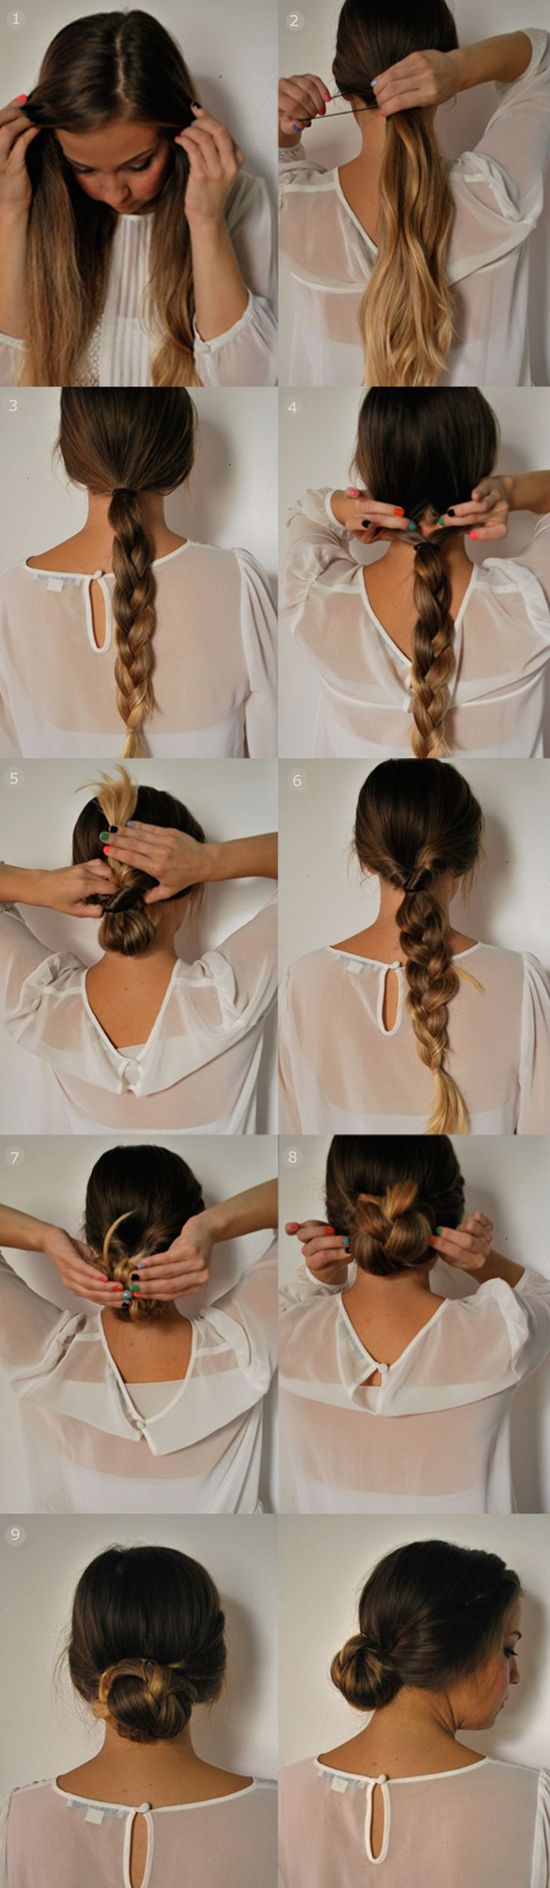 Quick 5 minute updo braided ponytail updo